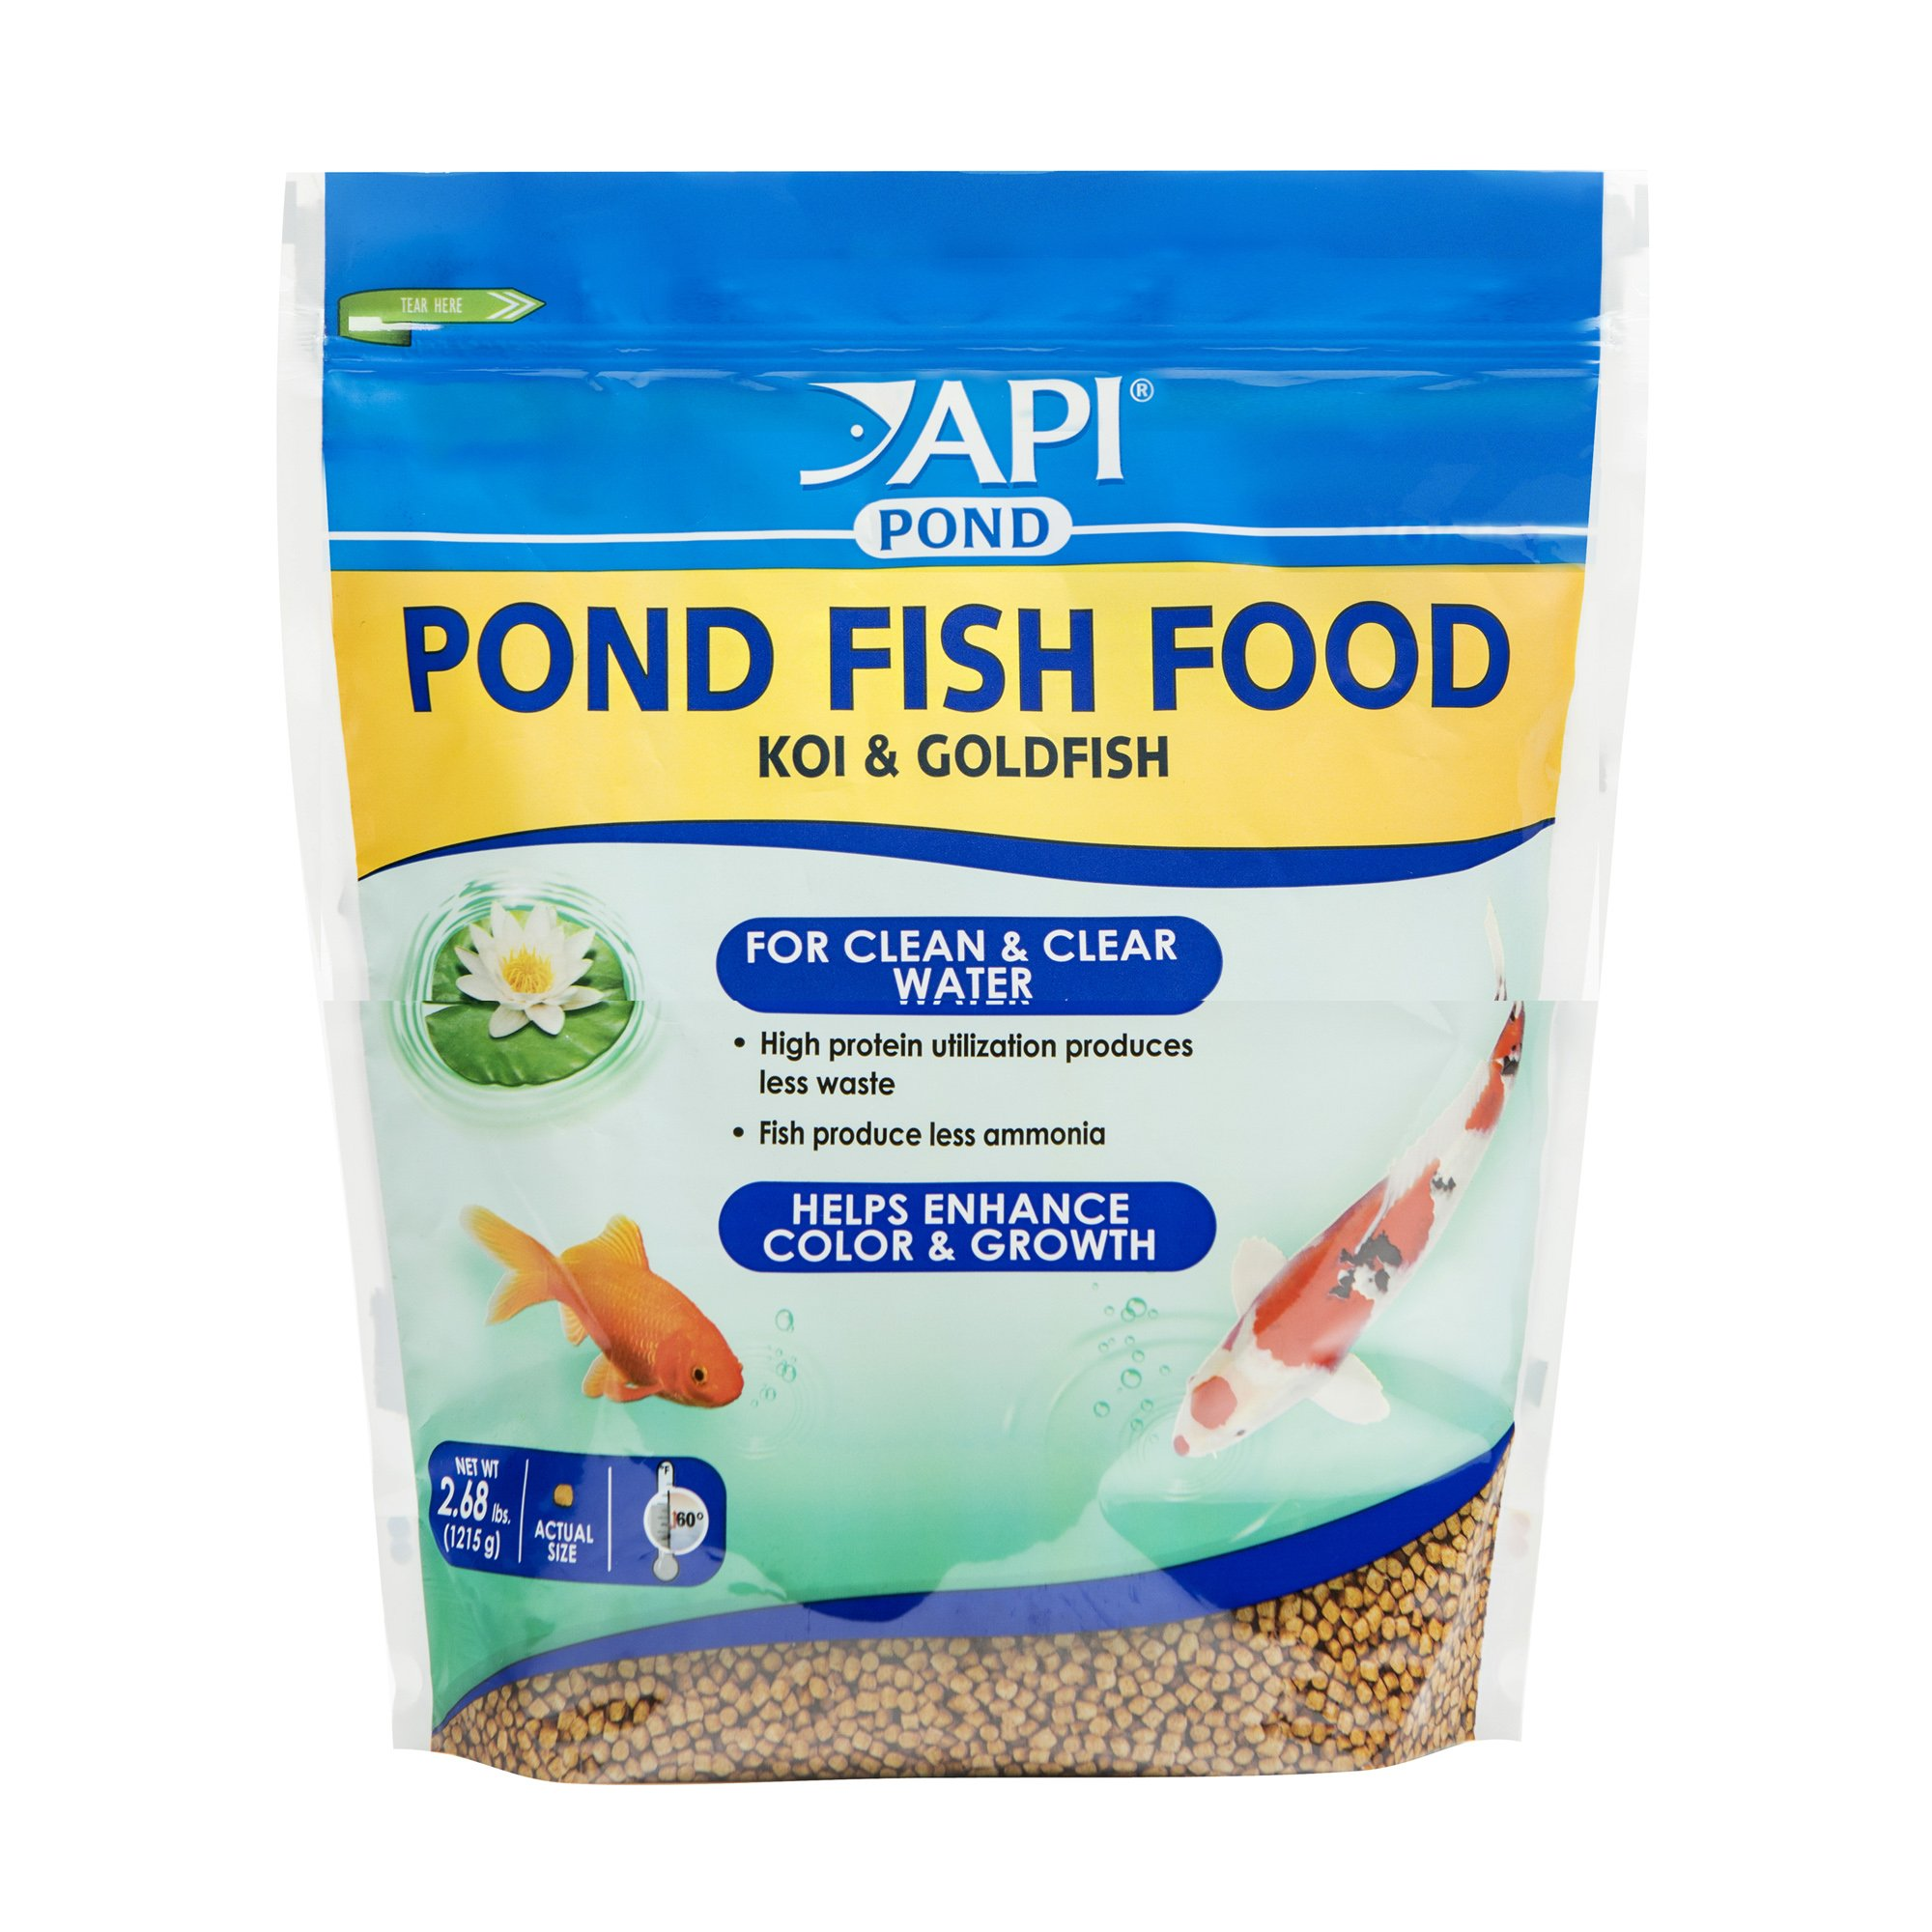 API Pond Fish Food 2.68 lb Bag